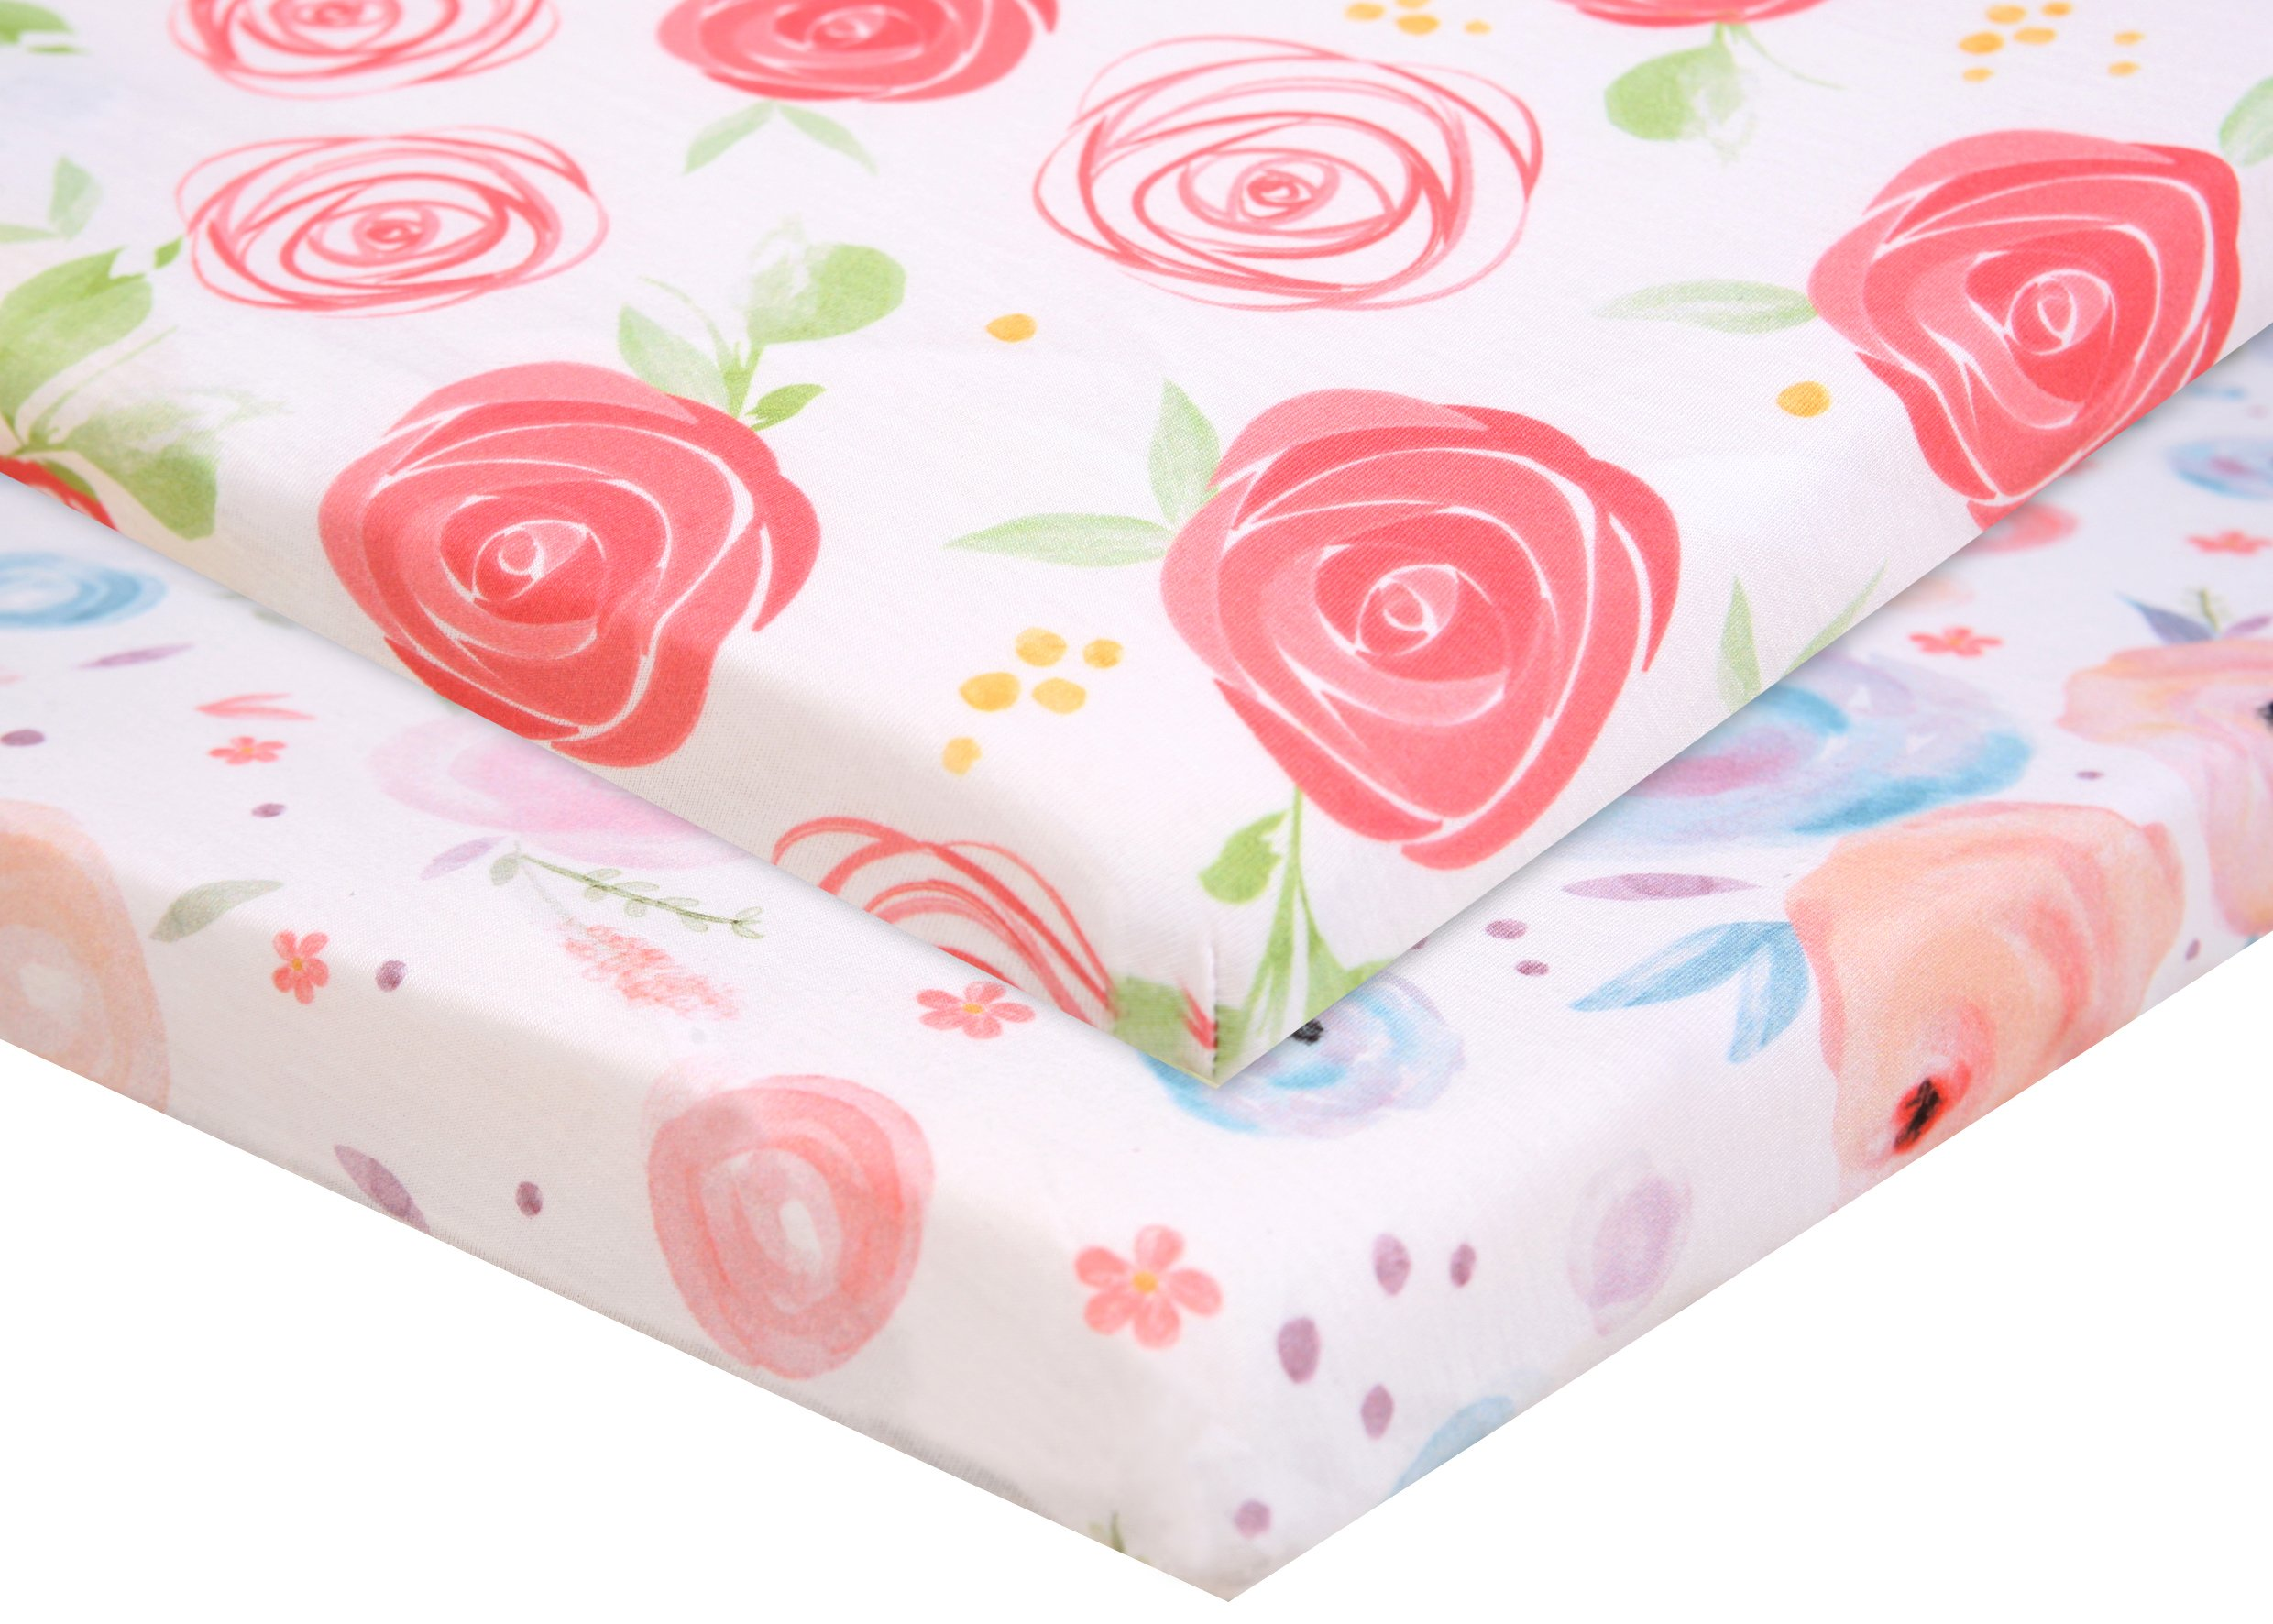 Pack n Play Fitted Pack n Play Playard Sheet Set-2 Pack Portable Mini Crib Sheets,Playard Mattress Cover,Super Soft Material, Flowers by Luxuriously Soft-NEW YORK